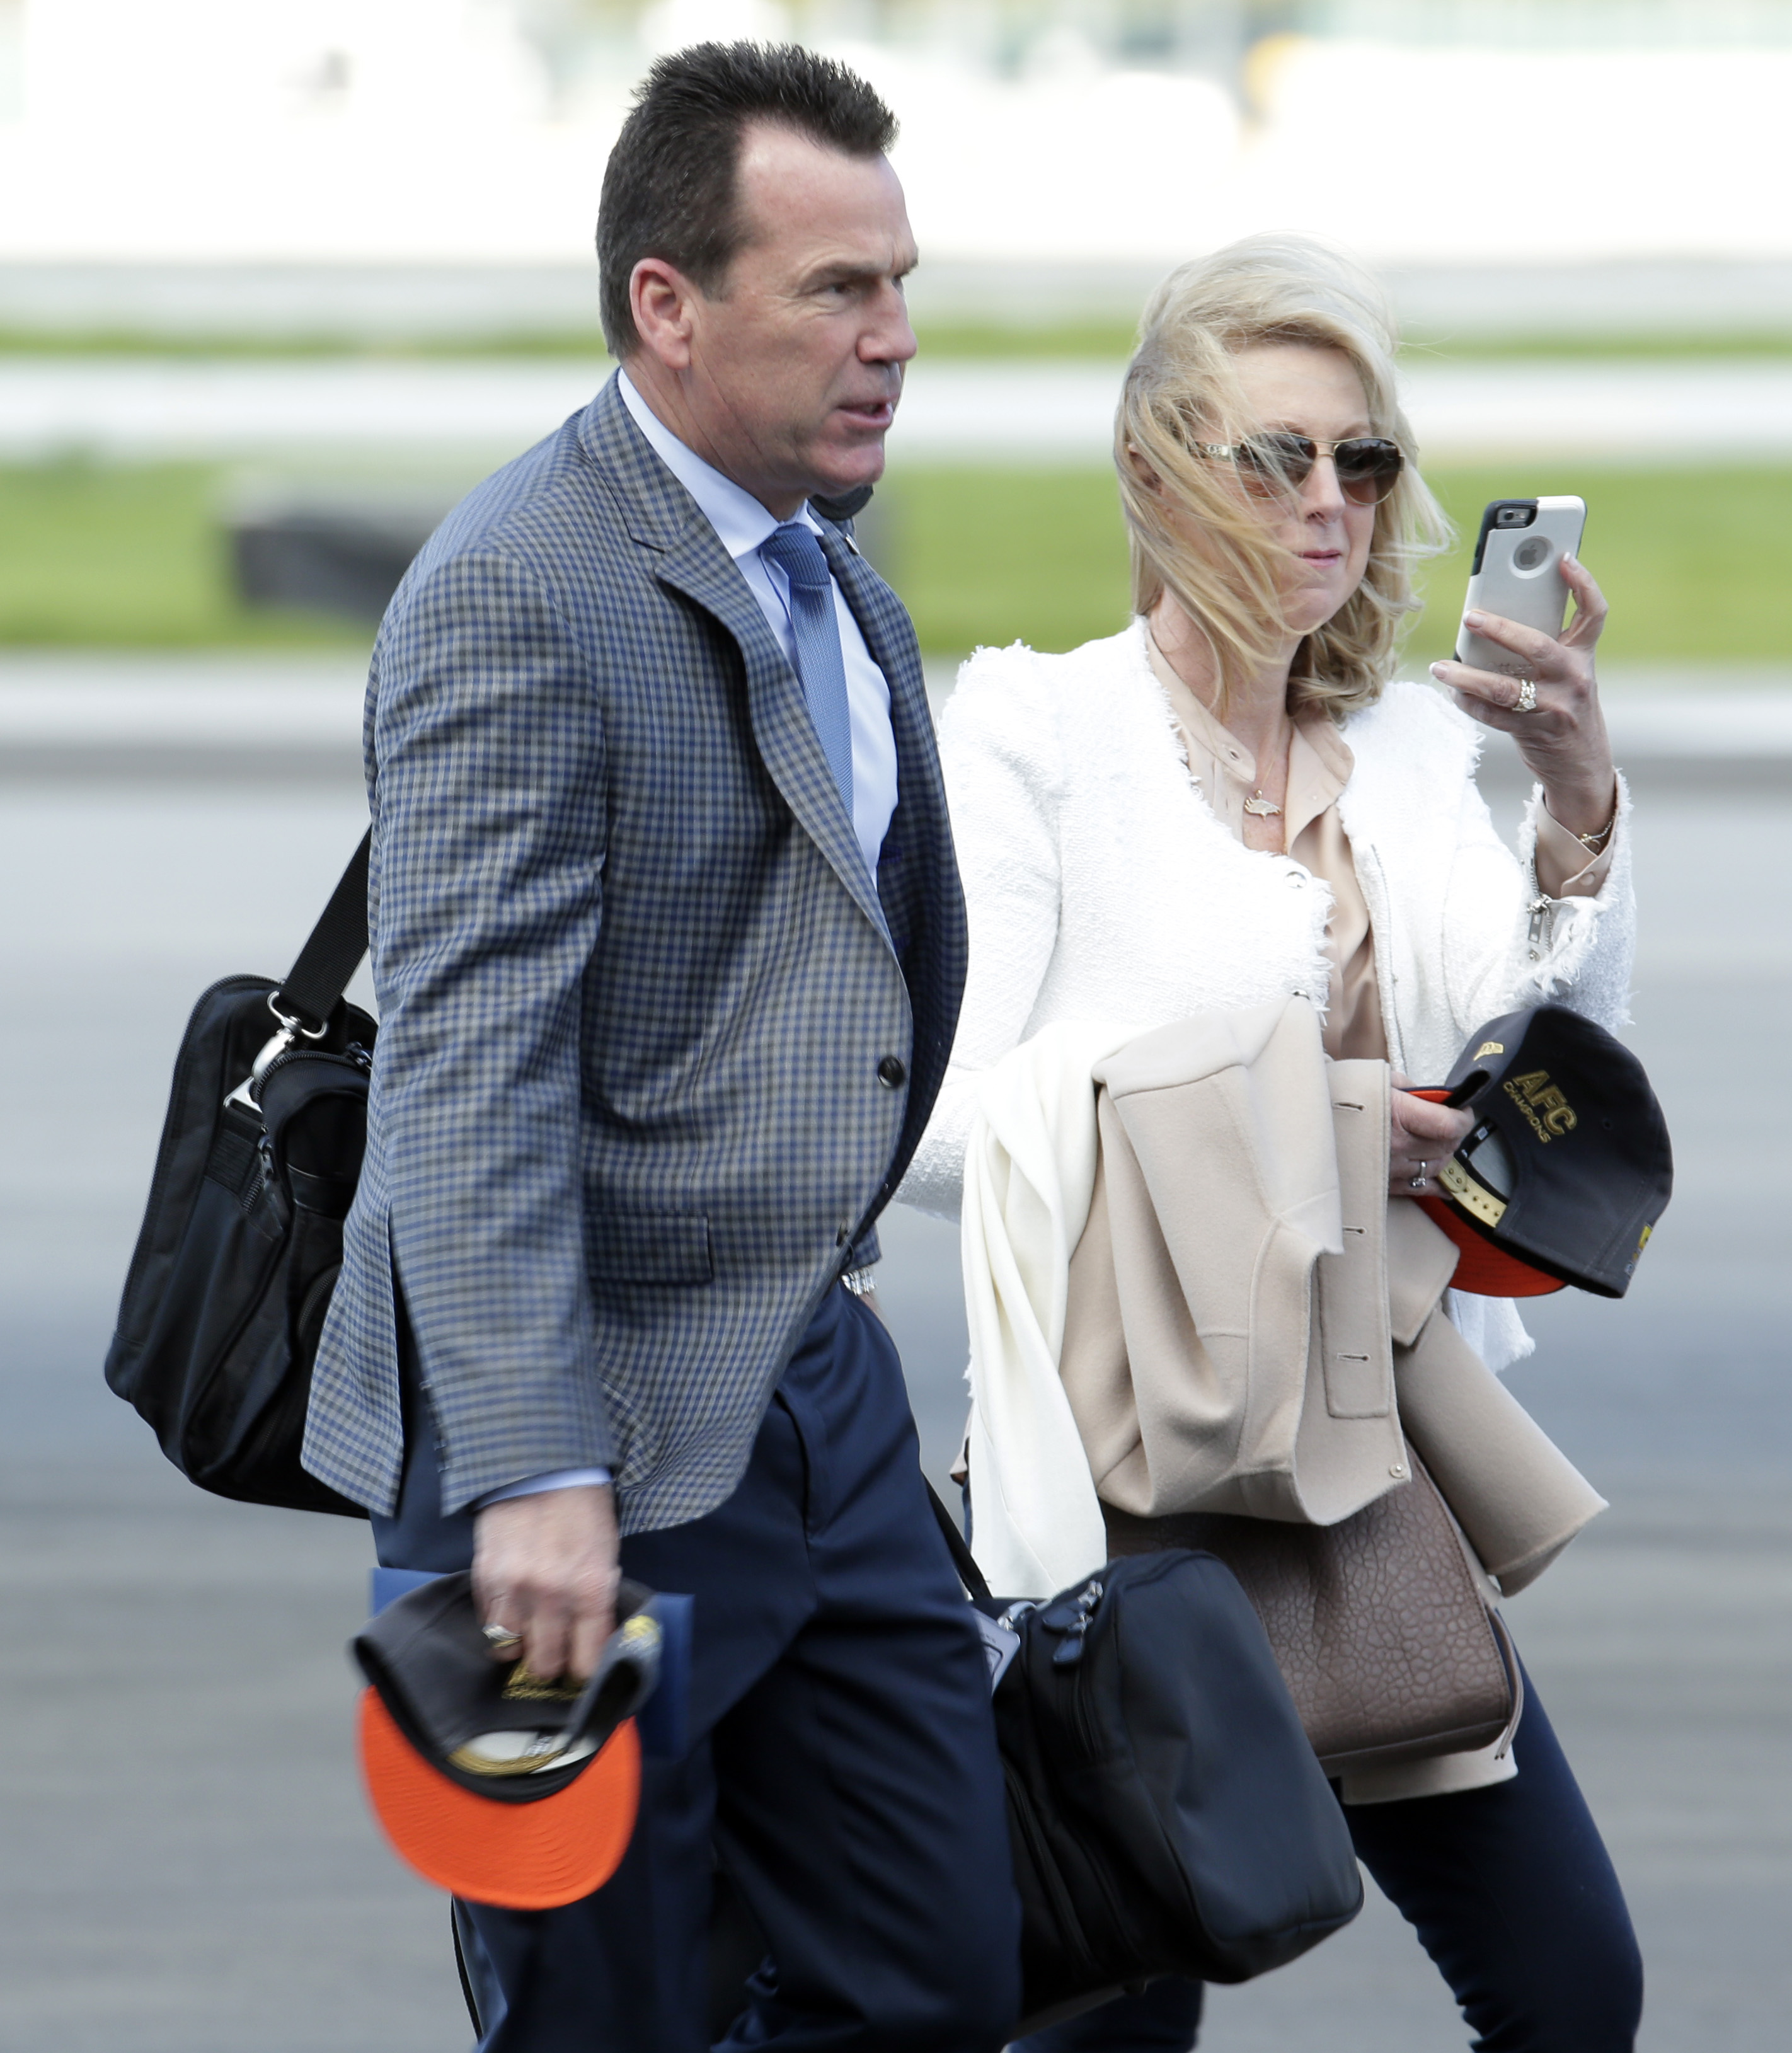 Denver Broncos head coach Gary Kubiak and wife Rhonda get off the plane as they arrive at the Mineta San Jose International Airport for the NFL Super Bowl football game Sunday, Jan. 31, 2016, in San Jose, Calif.  The Broncos play the Carolina Panthers on